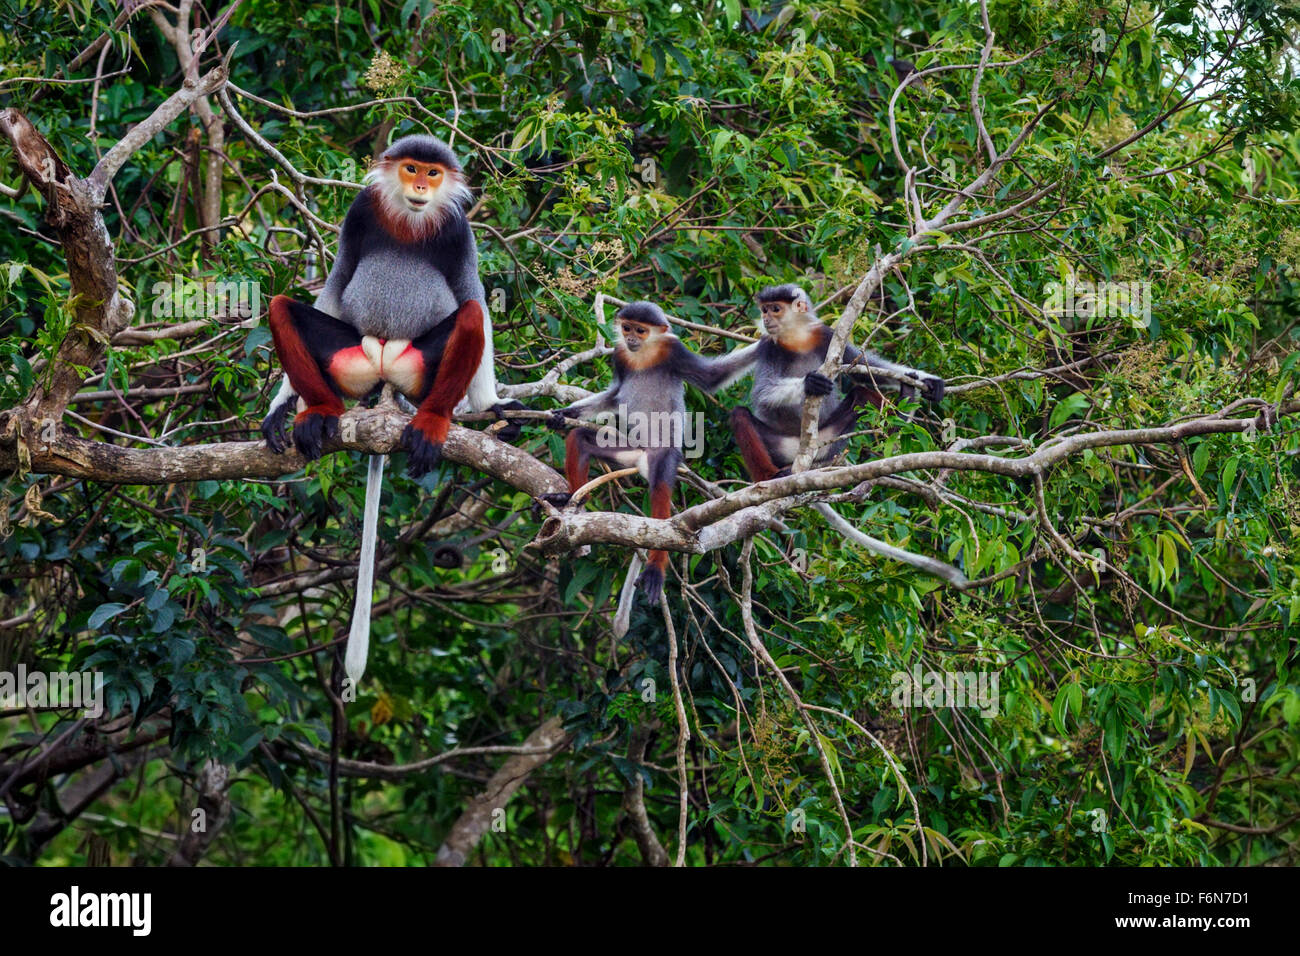 Adult male Red-shanked douc babysitting in the canopy at Son Tra nature reserve in Vietnam - Stock Image